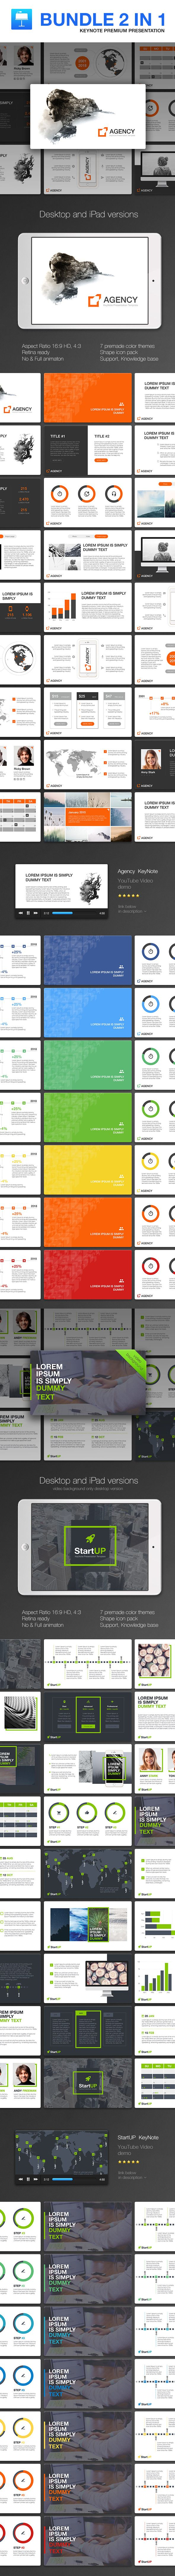 Bundle 2 in 1 KeyNote - Keynote Templates Presentation Templates